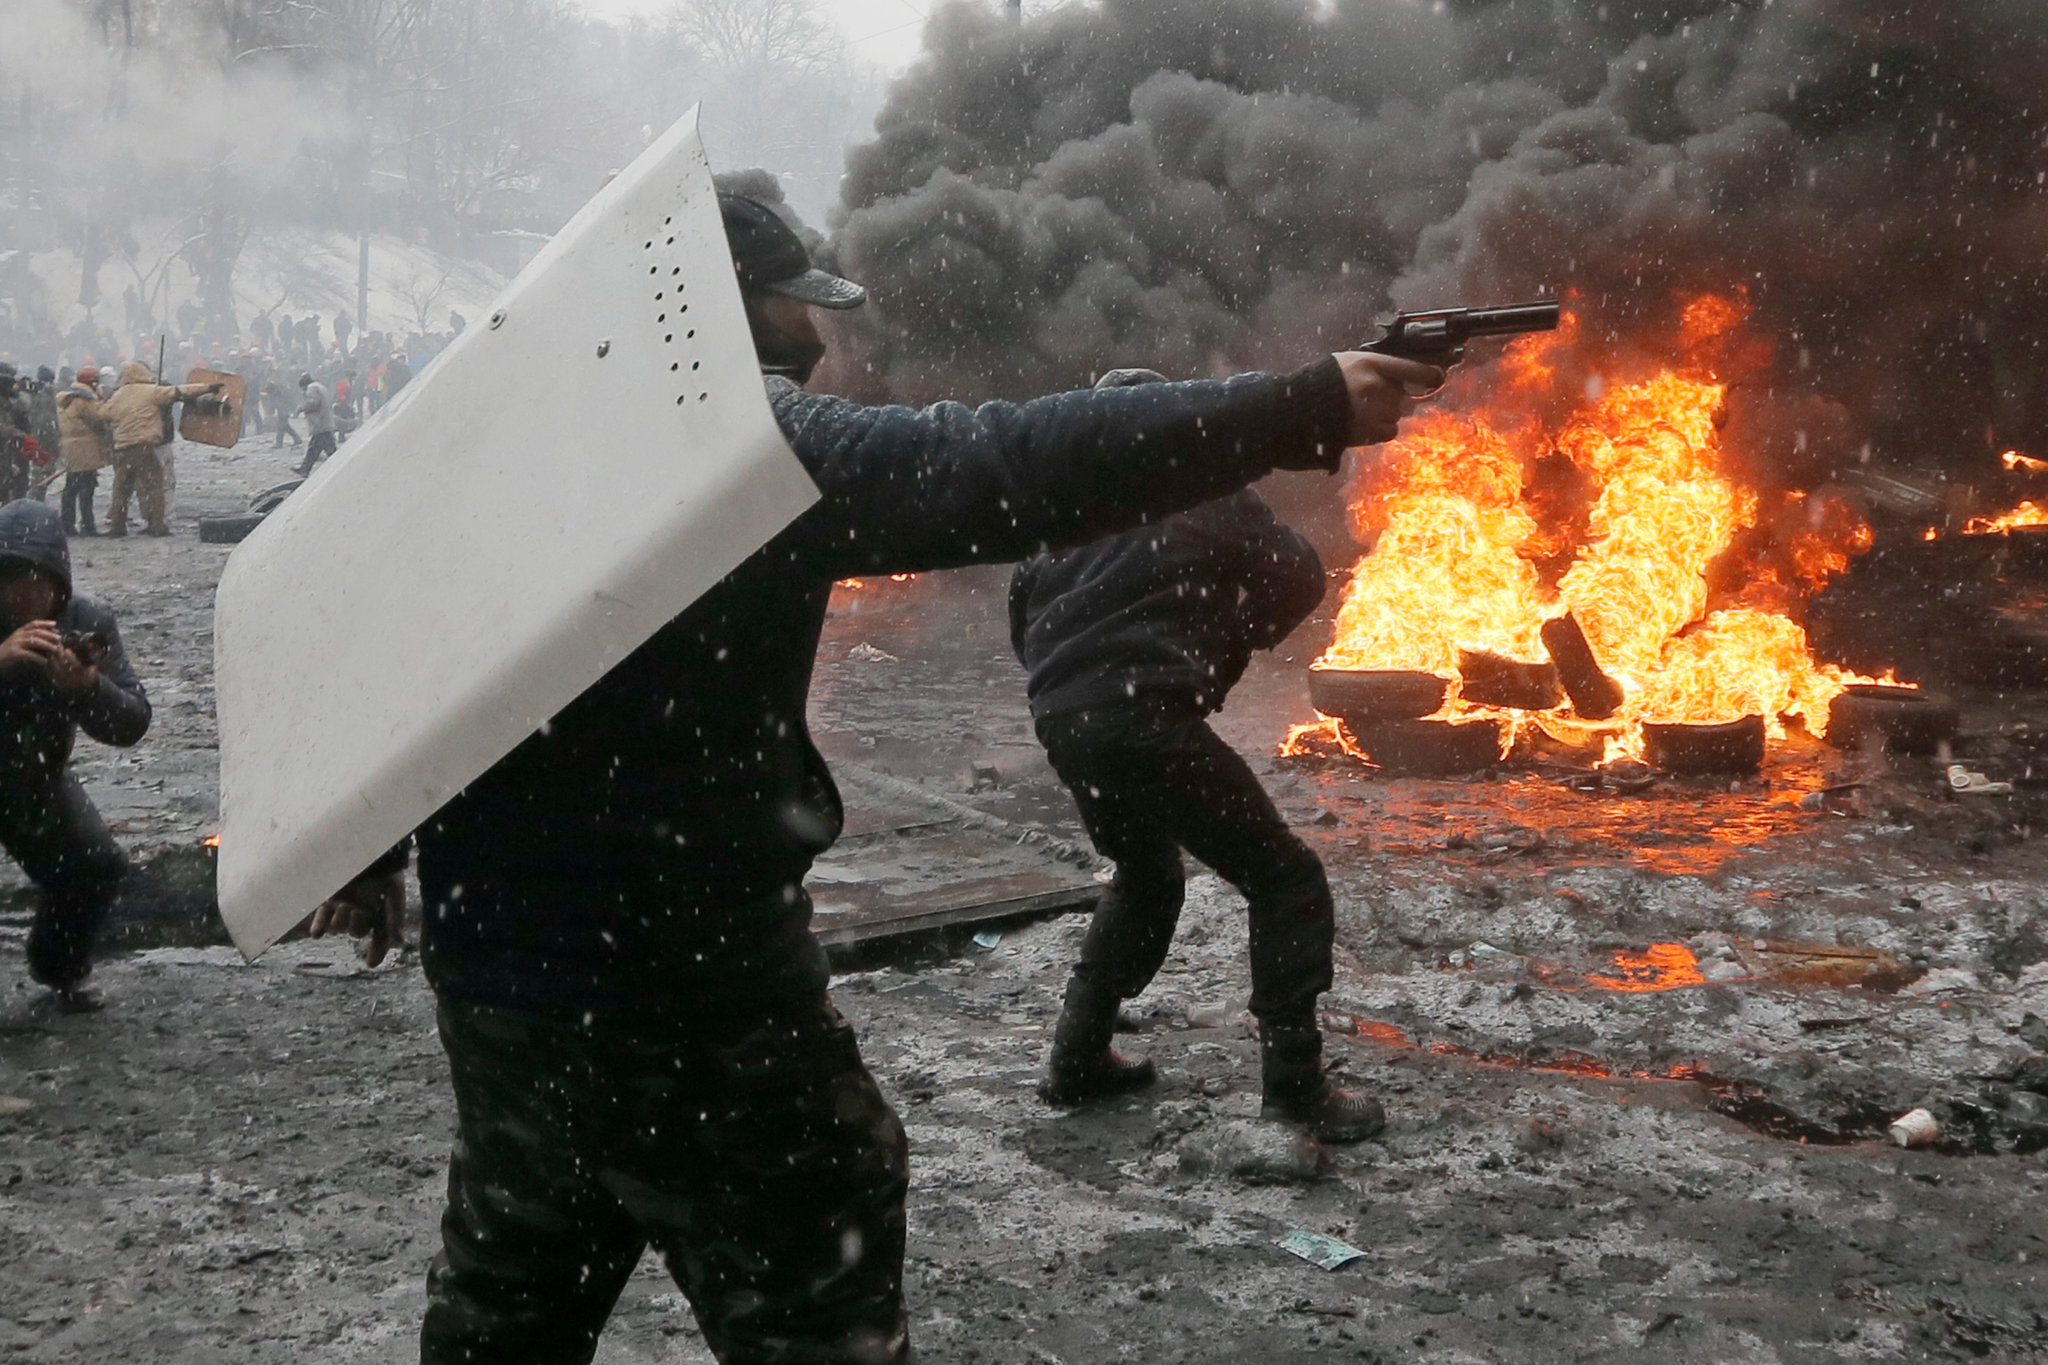 A protester pointed a handgun during clashes with police.